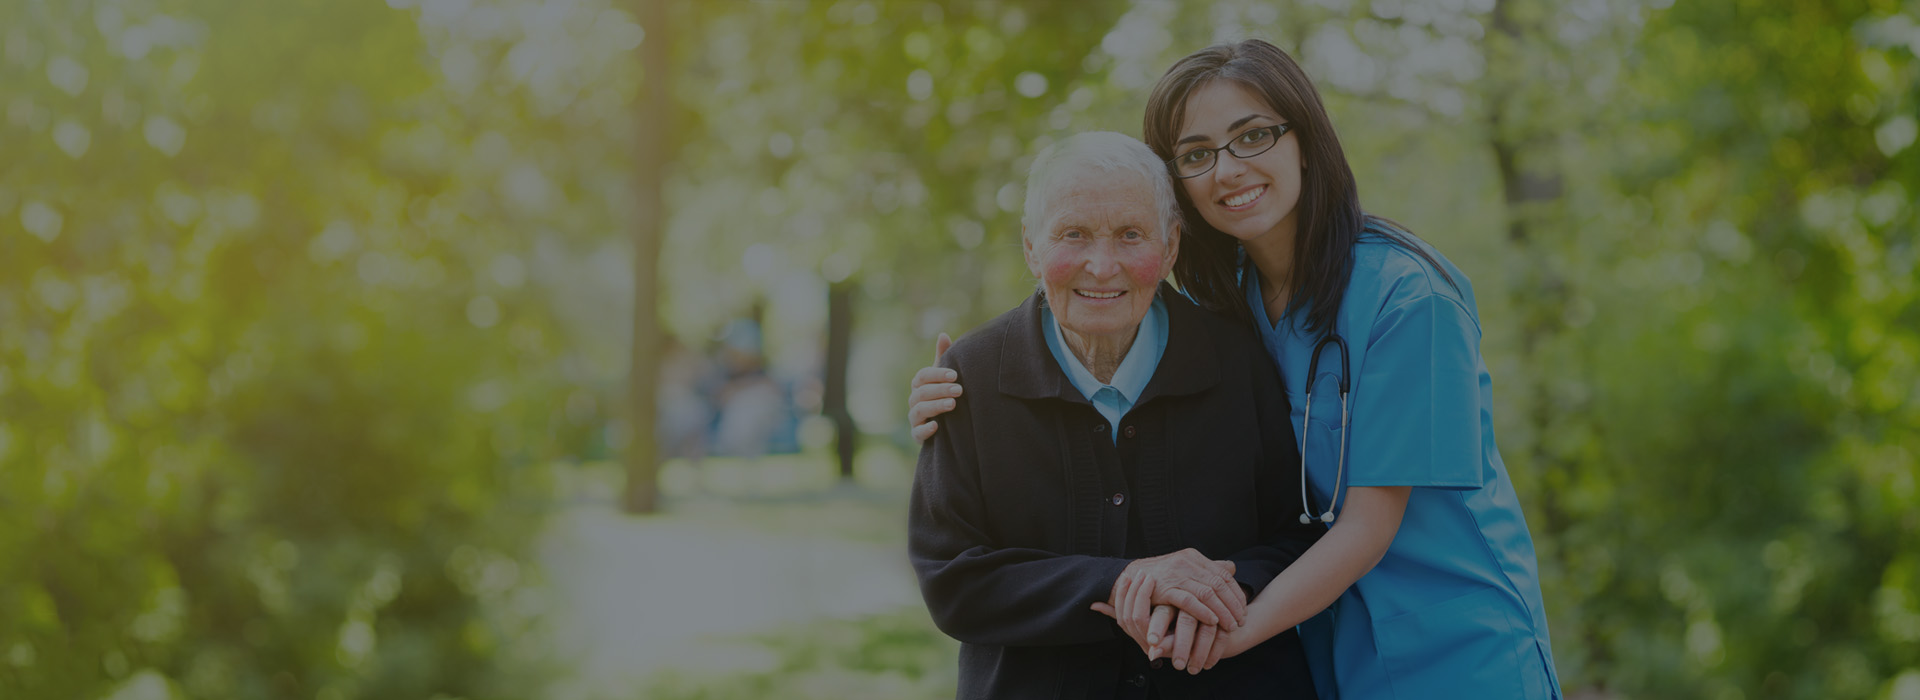 24 hour care for the elderly in their own home